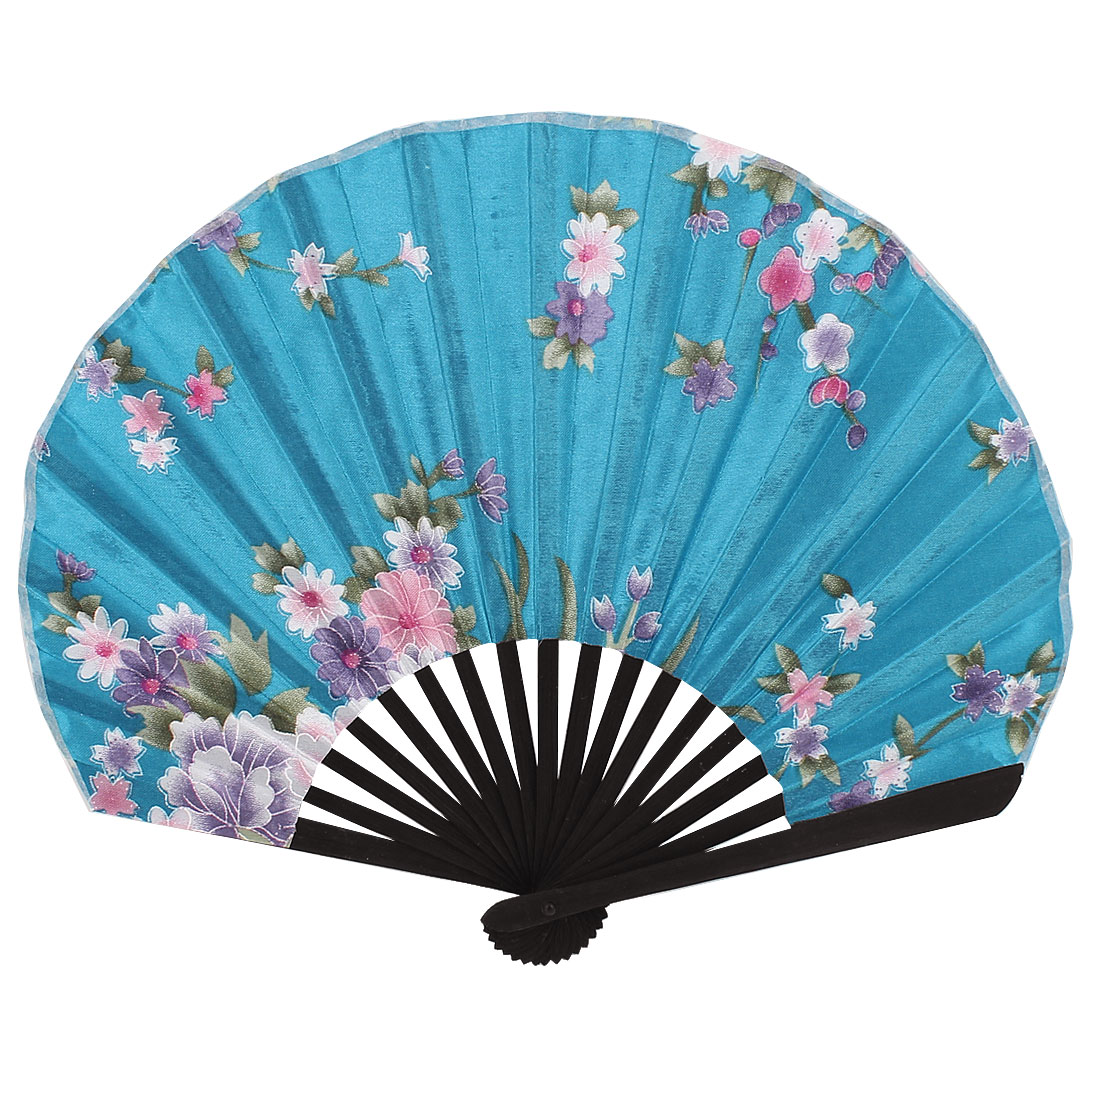 Bamboo Ribs Flower Pattern Silky Section Foldable Craft Hand Fan Teal Blue Black